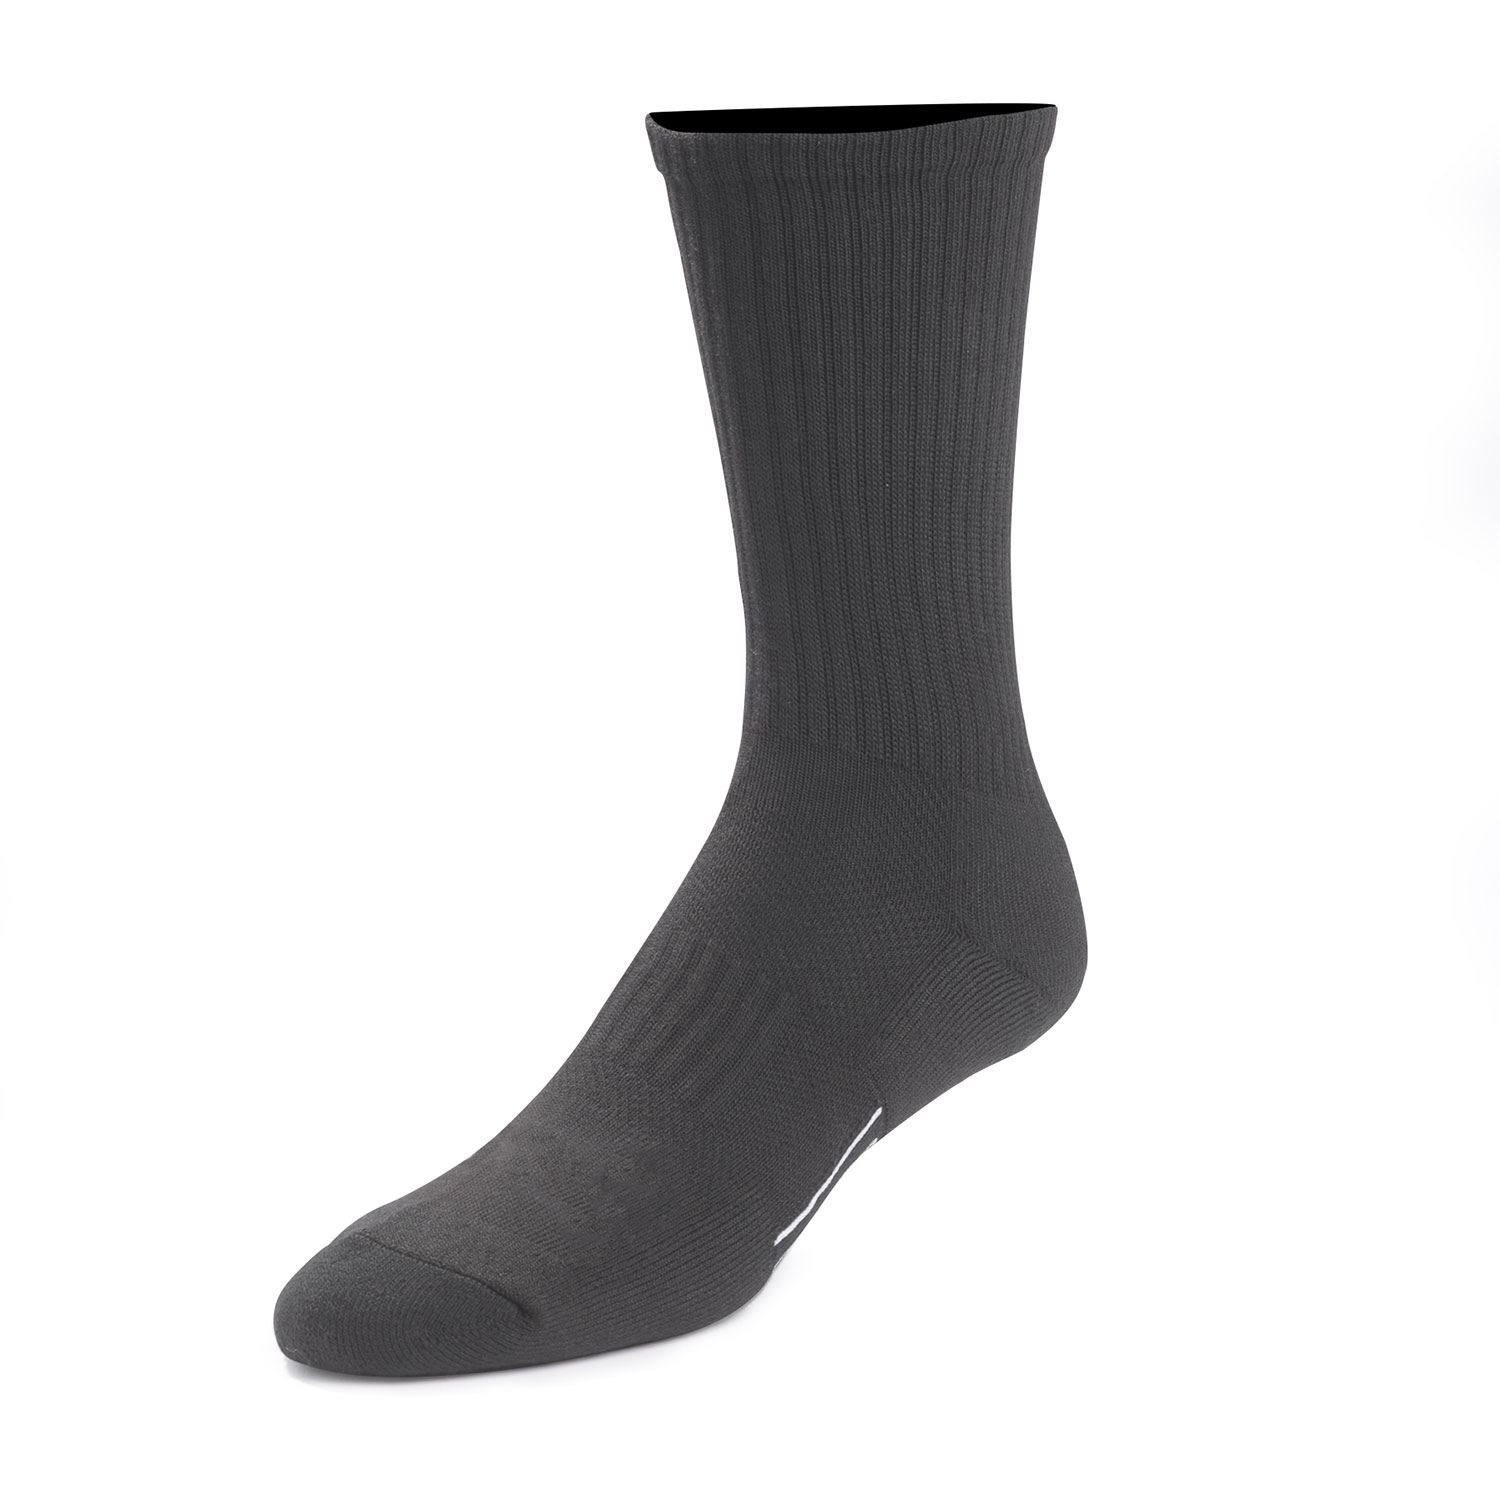 Galls Cooling Boot Socks